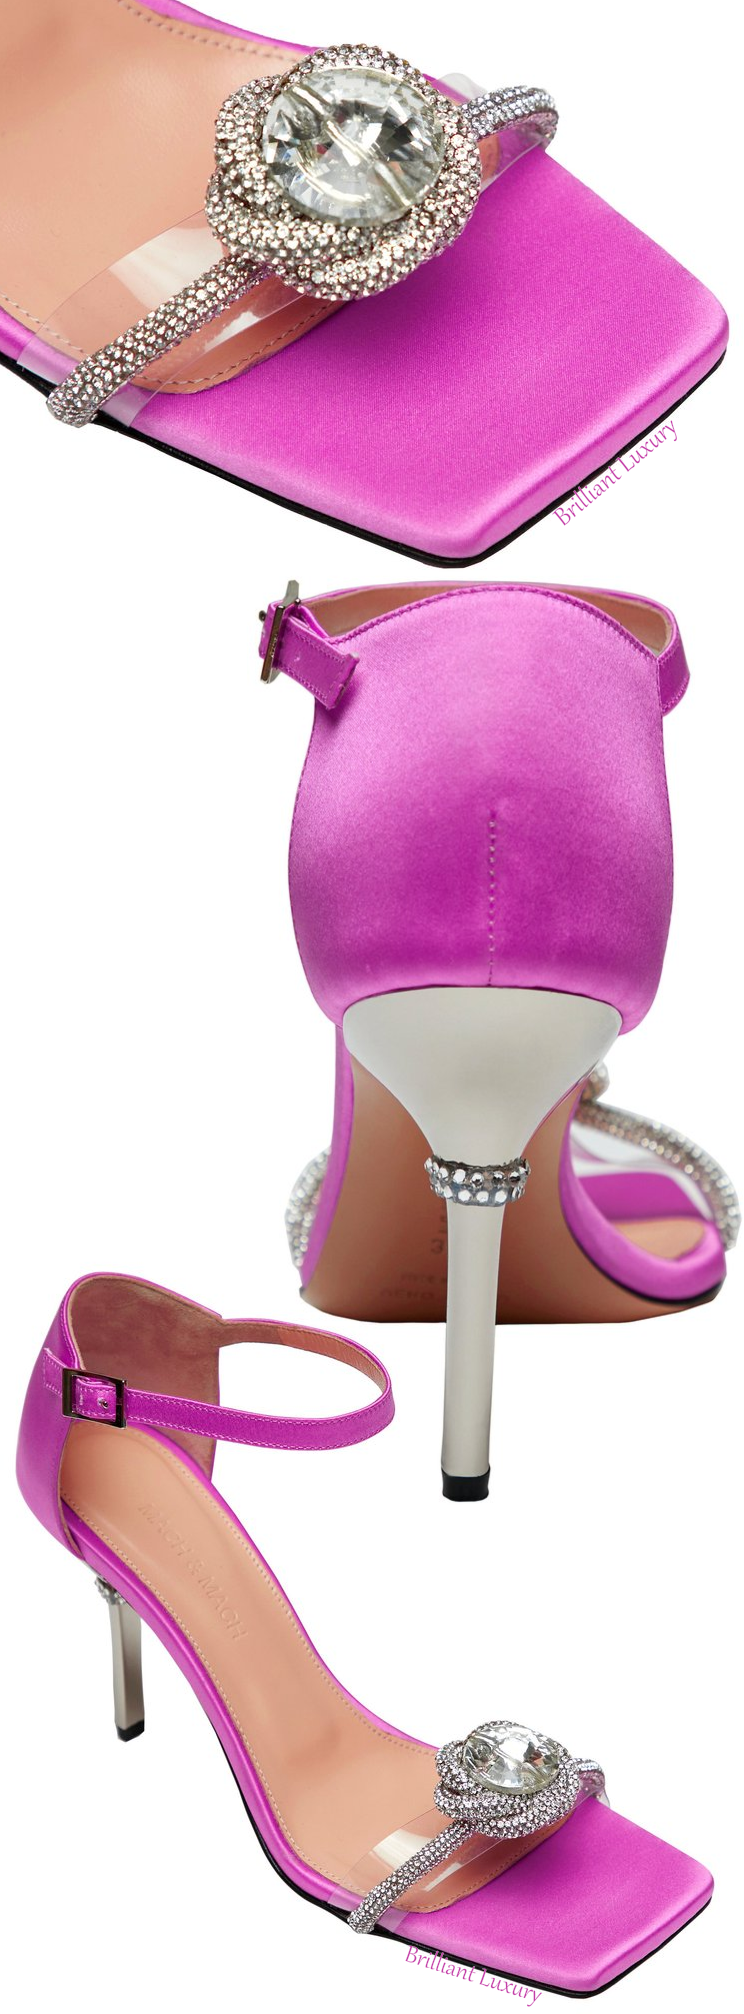 Mach & Mach purple Rosie crystal satin sandal colorful evening shoes #brilliantluxury